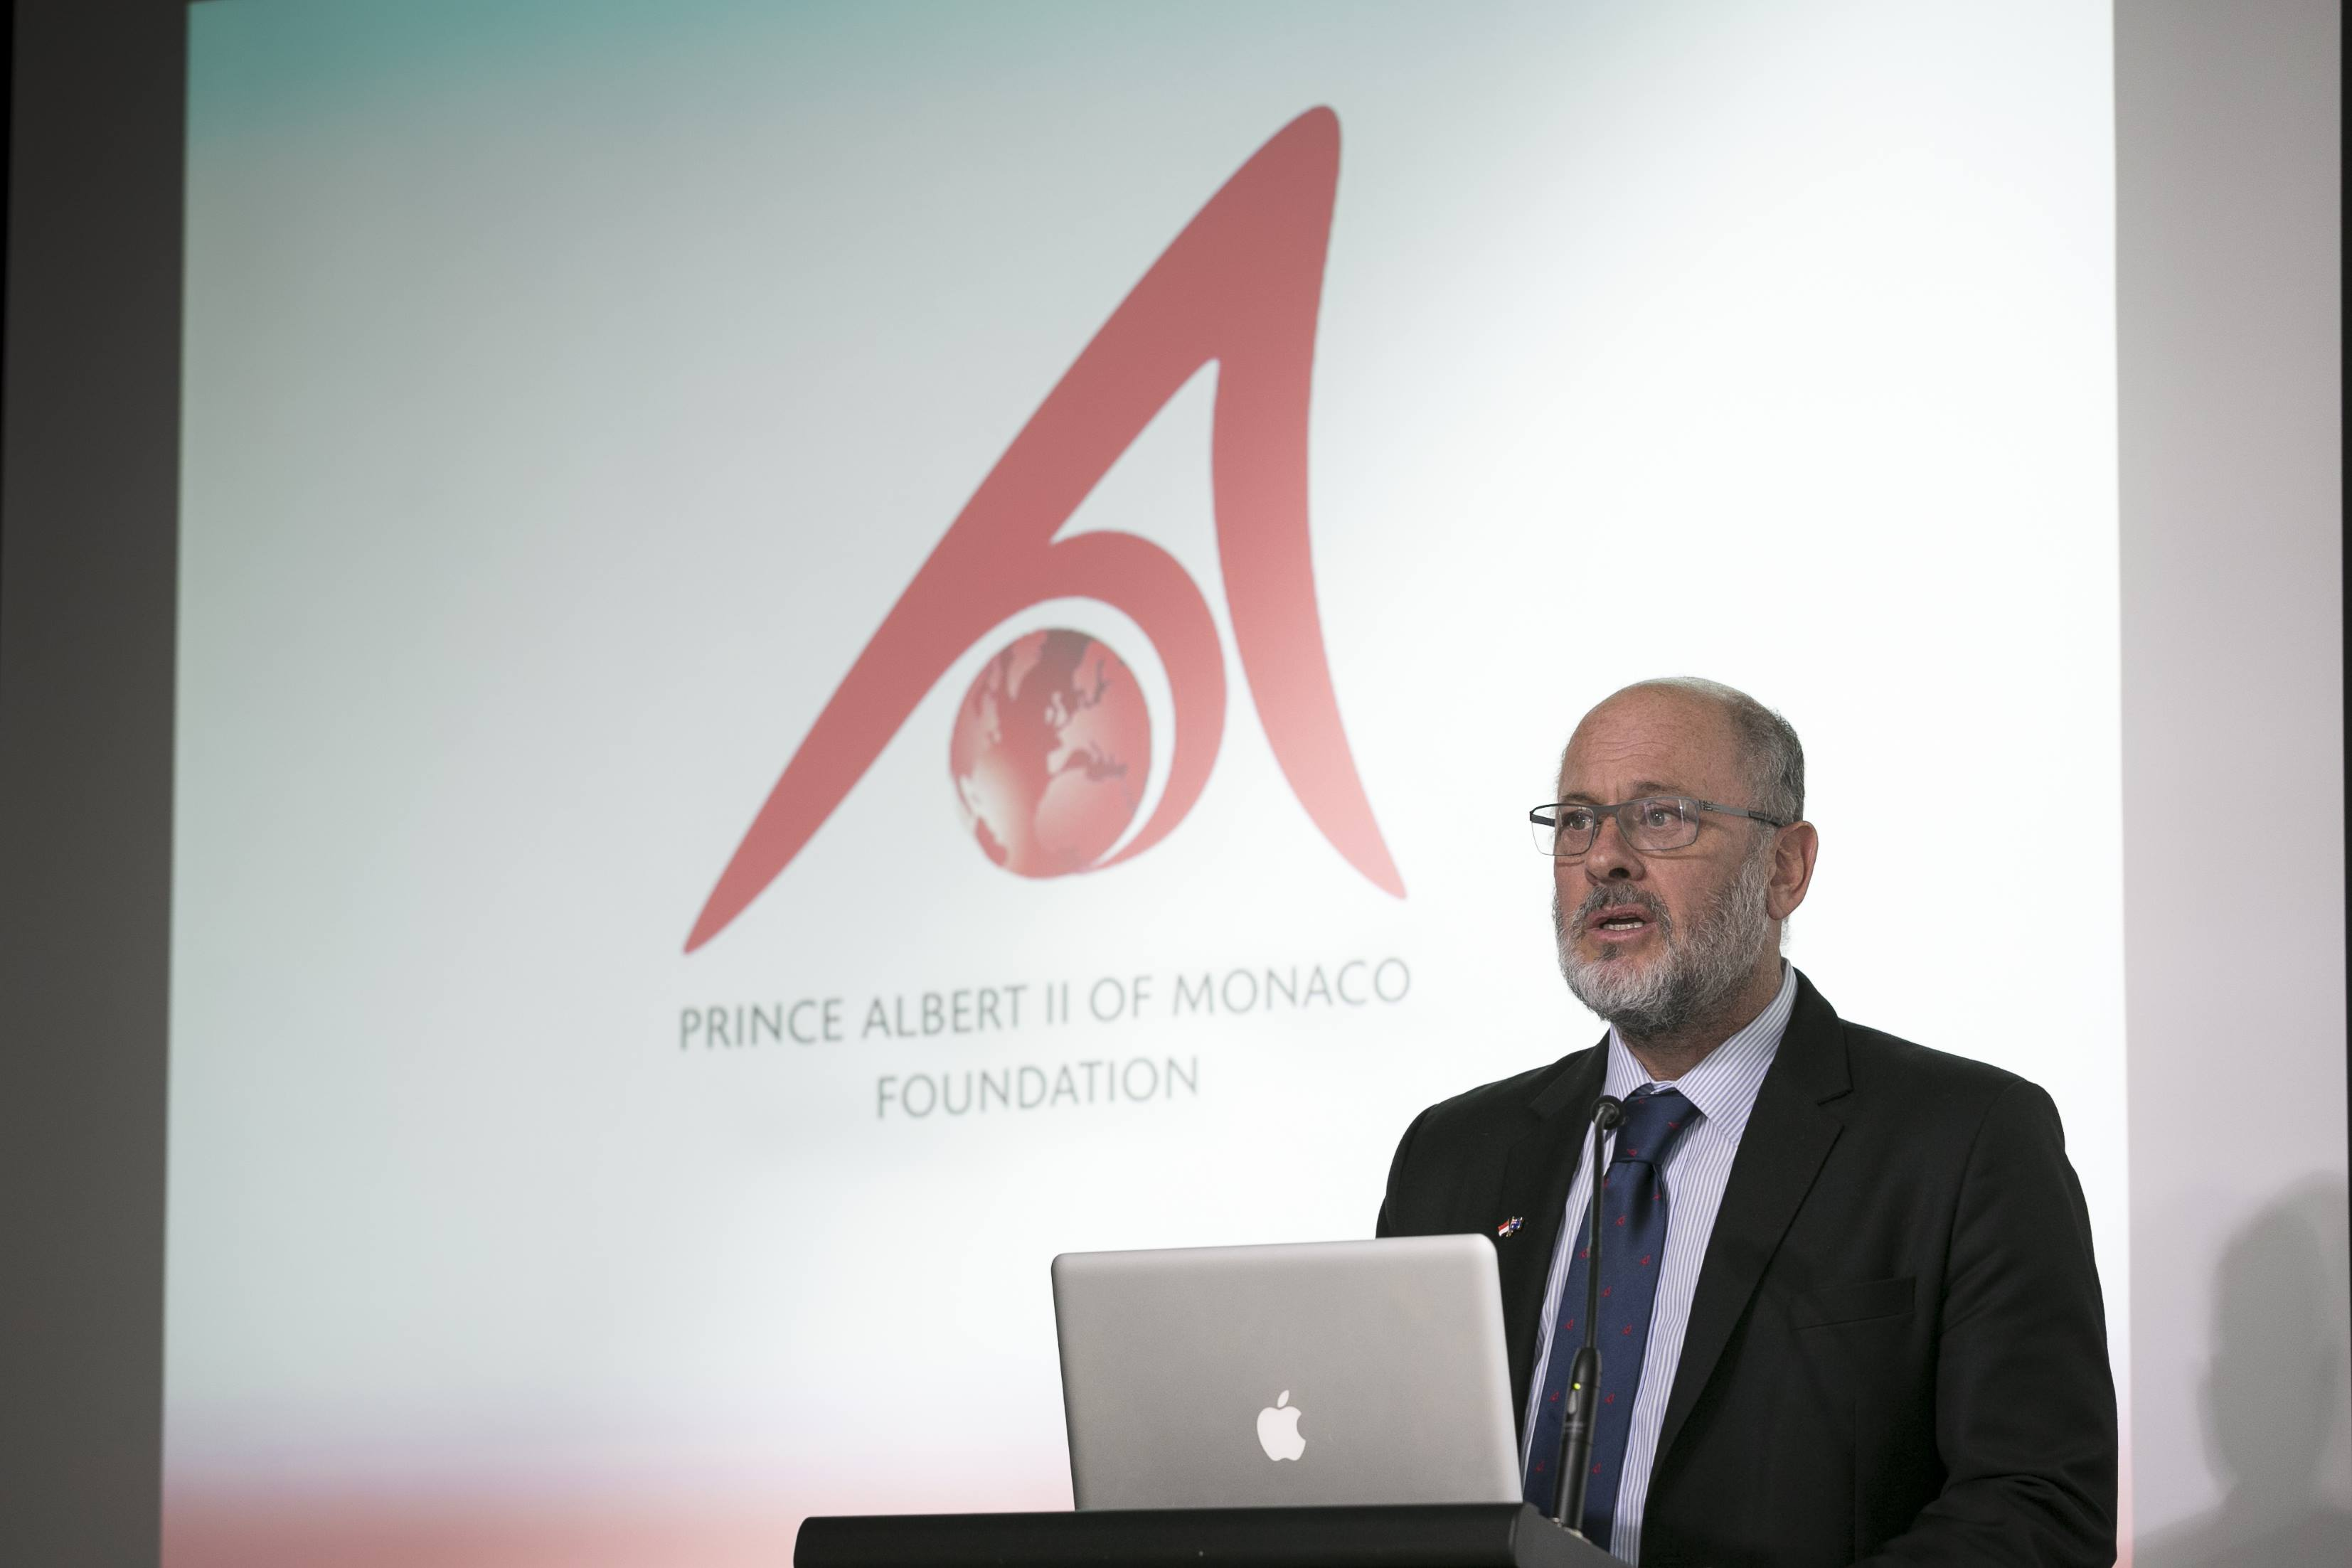 Monaco Exhibition Opening for Prince ALbert II Foundation